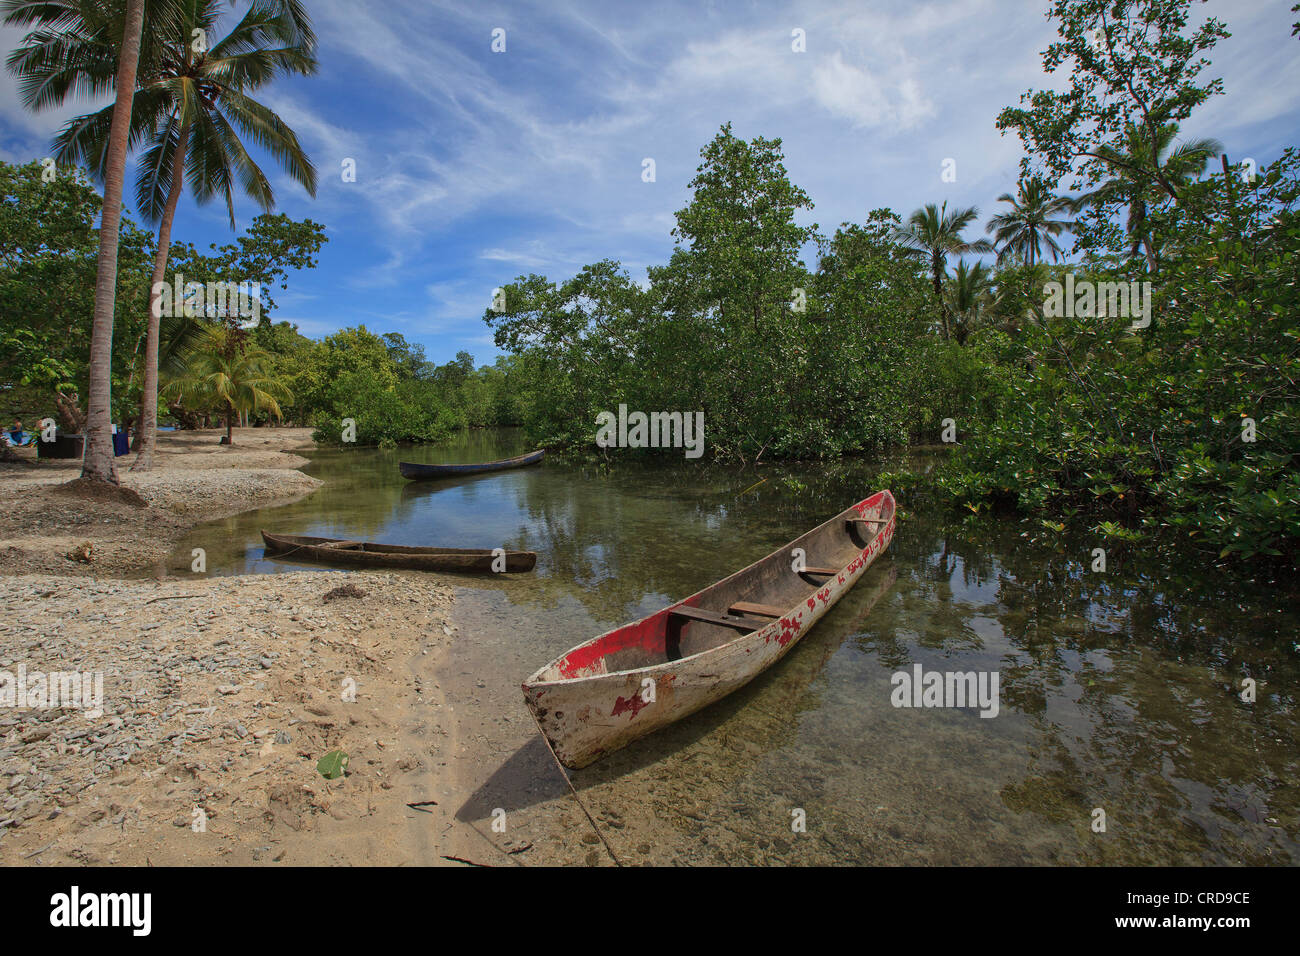 Tomoto Neo, Nendo, Santa Cruz Islands, Solomon Islands, Oceania - Stock Image